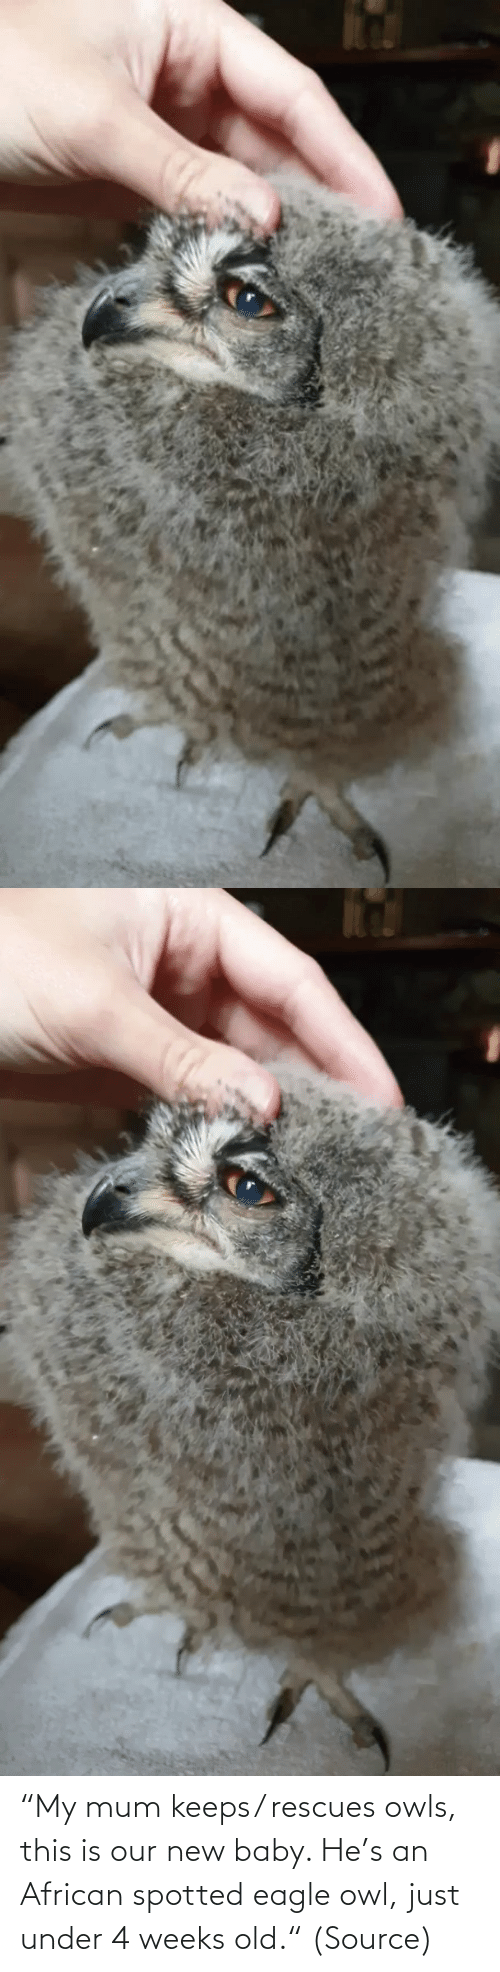 "Target: ""My mum keeps/ rescues owls, this is our new baby. He's an African spotted eagle owl, just under 4 weeks old."" (Source)"